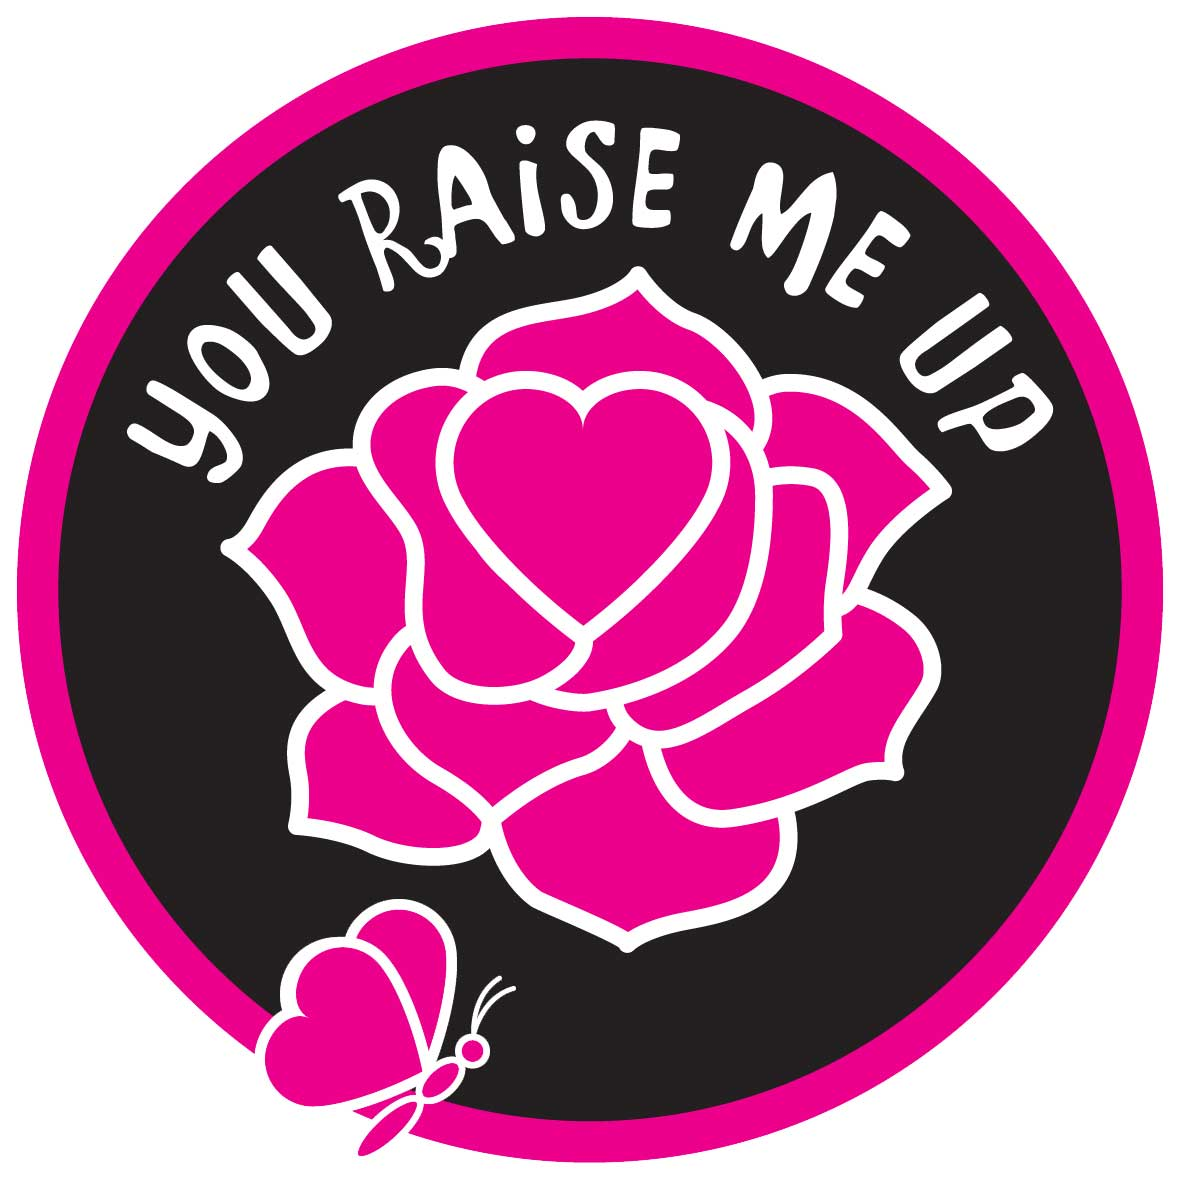 You Raise Me Up logo